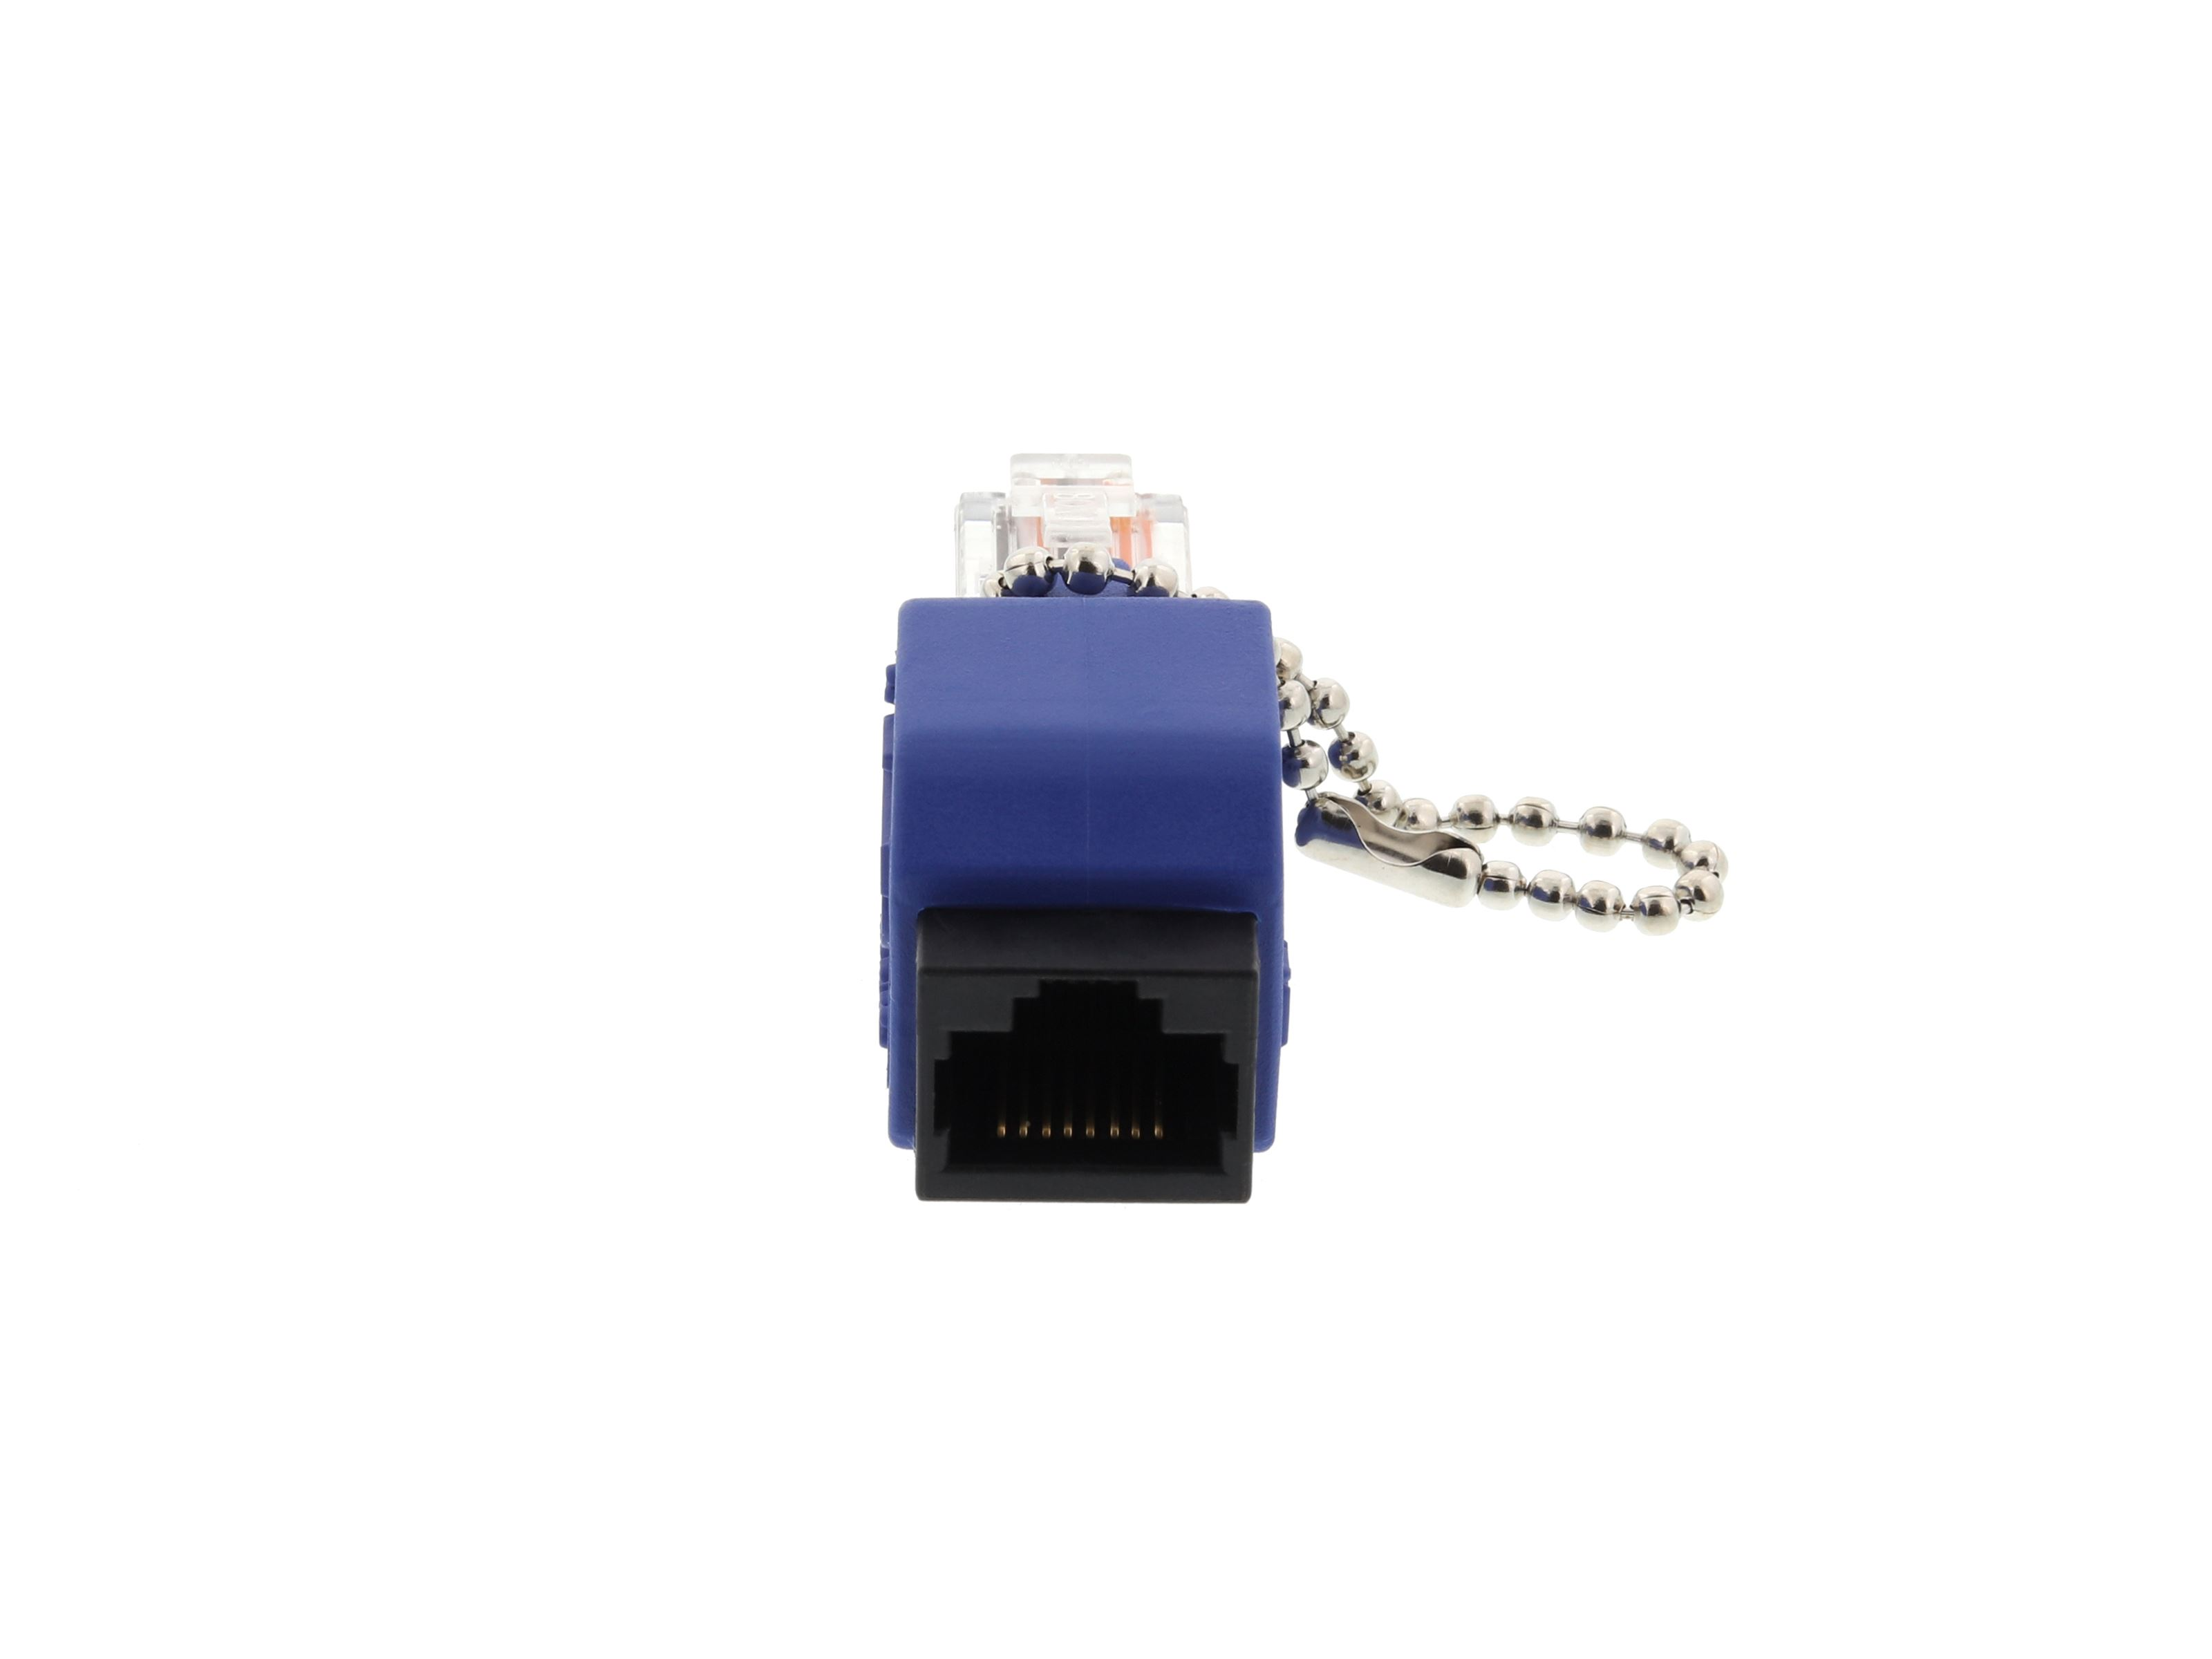 Gigabit Rj45 Loopback Tester Computer Cable Store